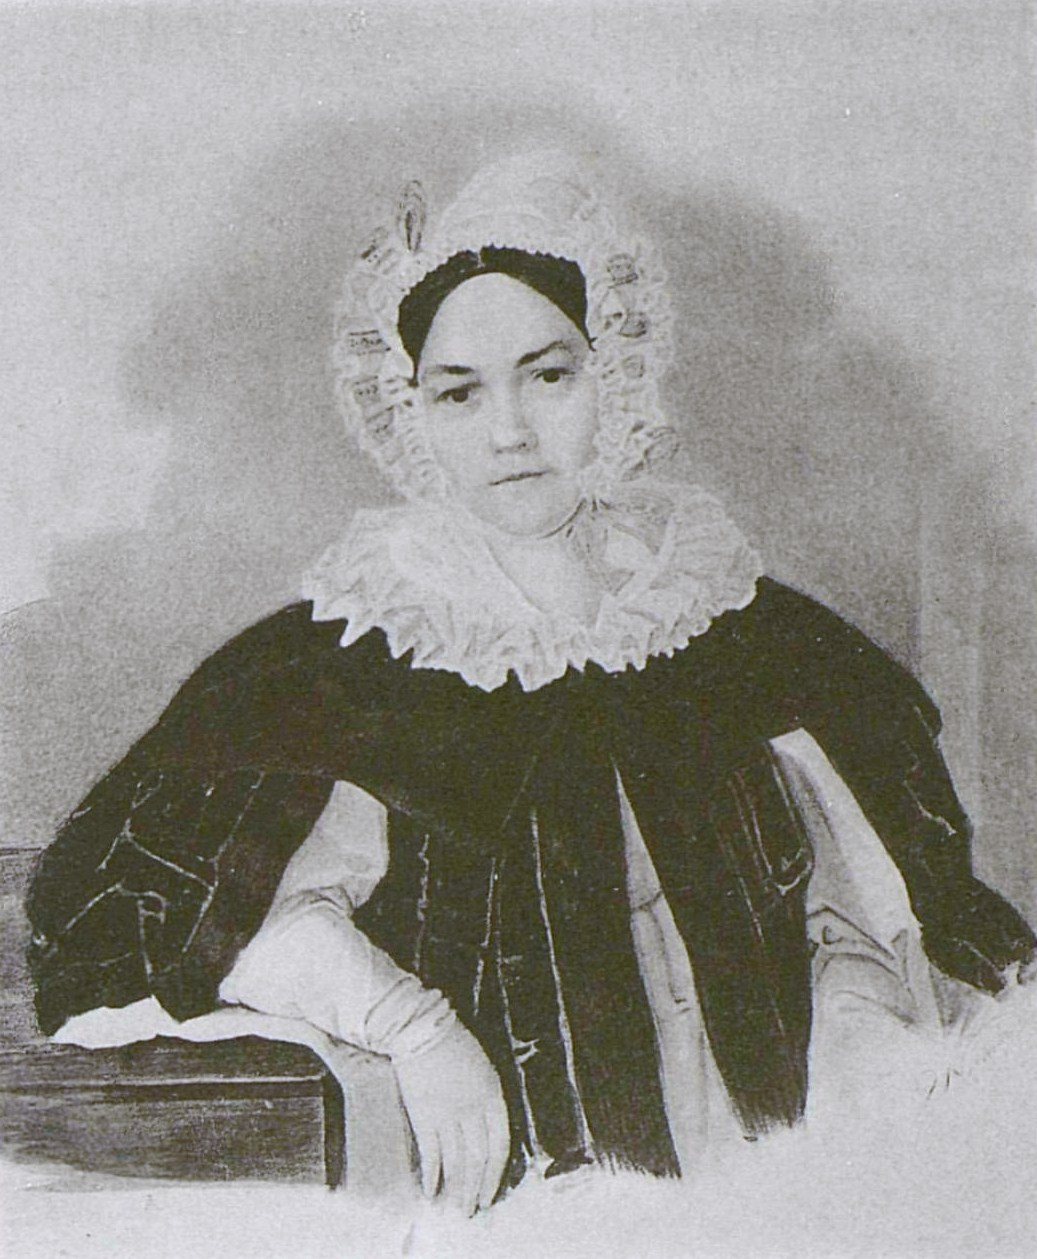 https://upload.wikimedia.org/wikipedia/commons/7/7b/KankrinaEkaterina1.jpg